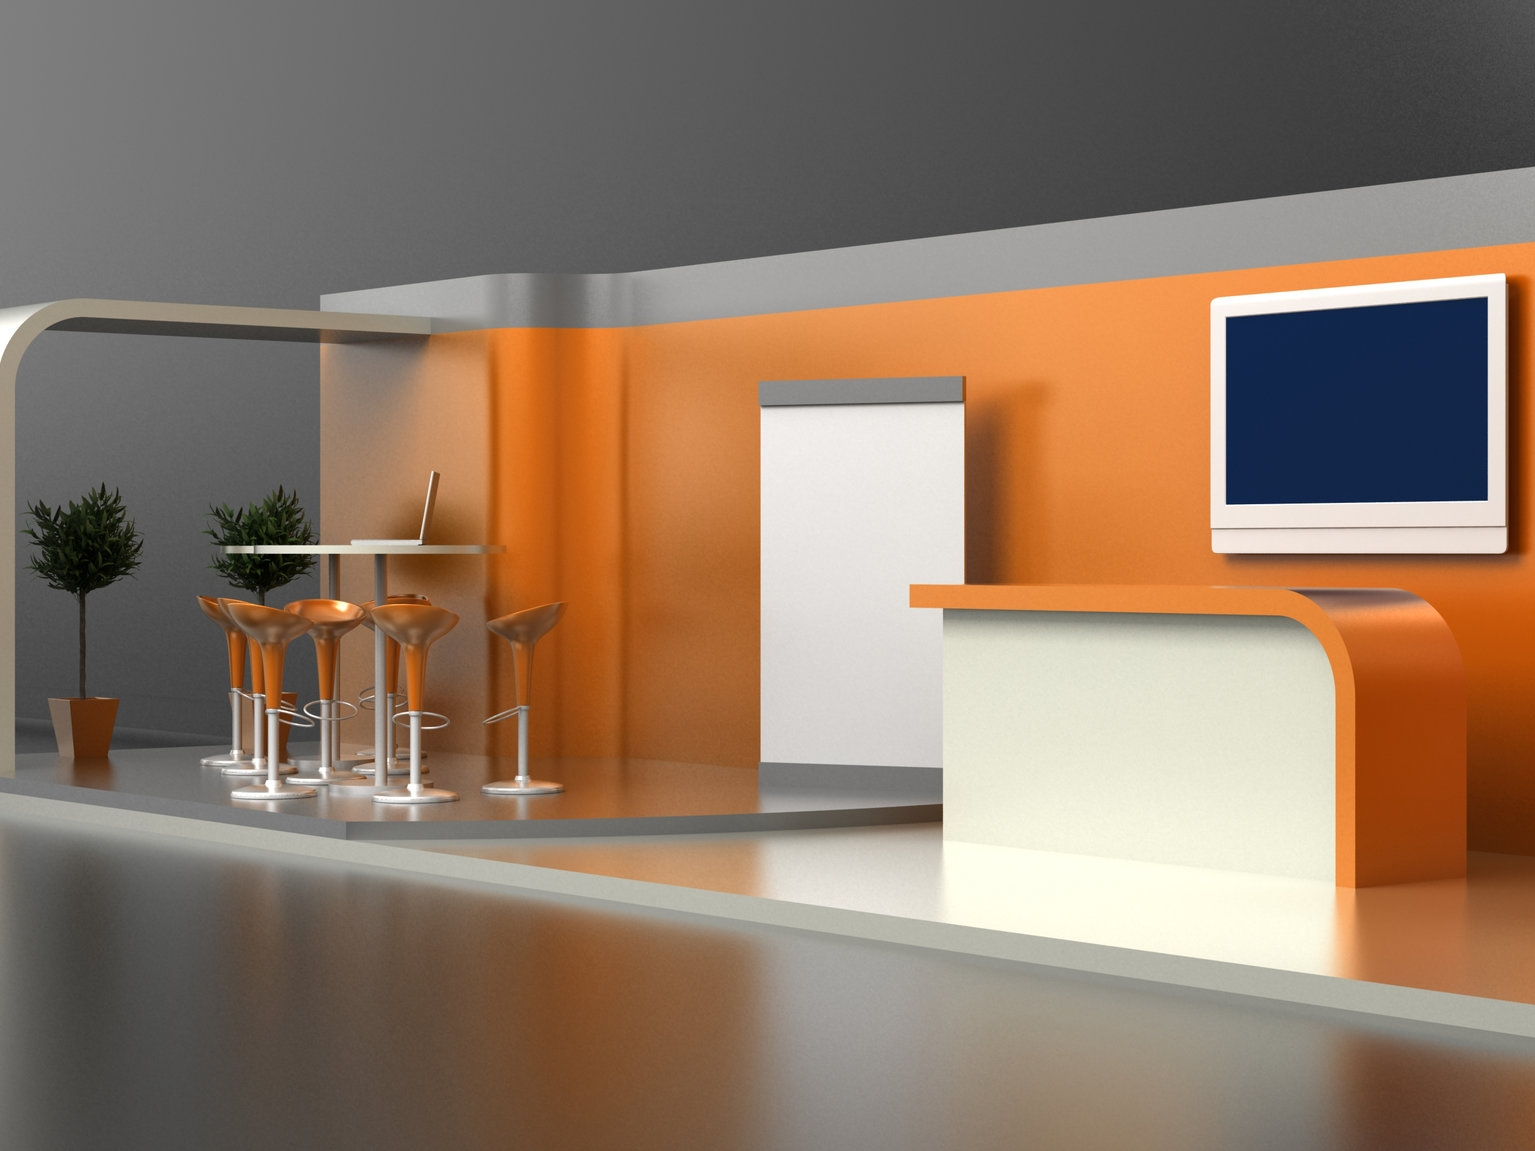 Exhibition stands - Attract the attention of exhibition visitors with a great looking, eye catching stand.